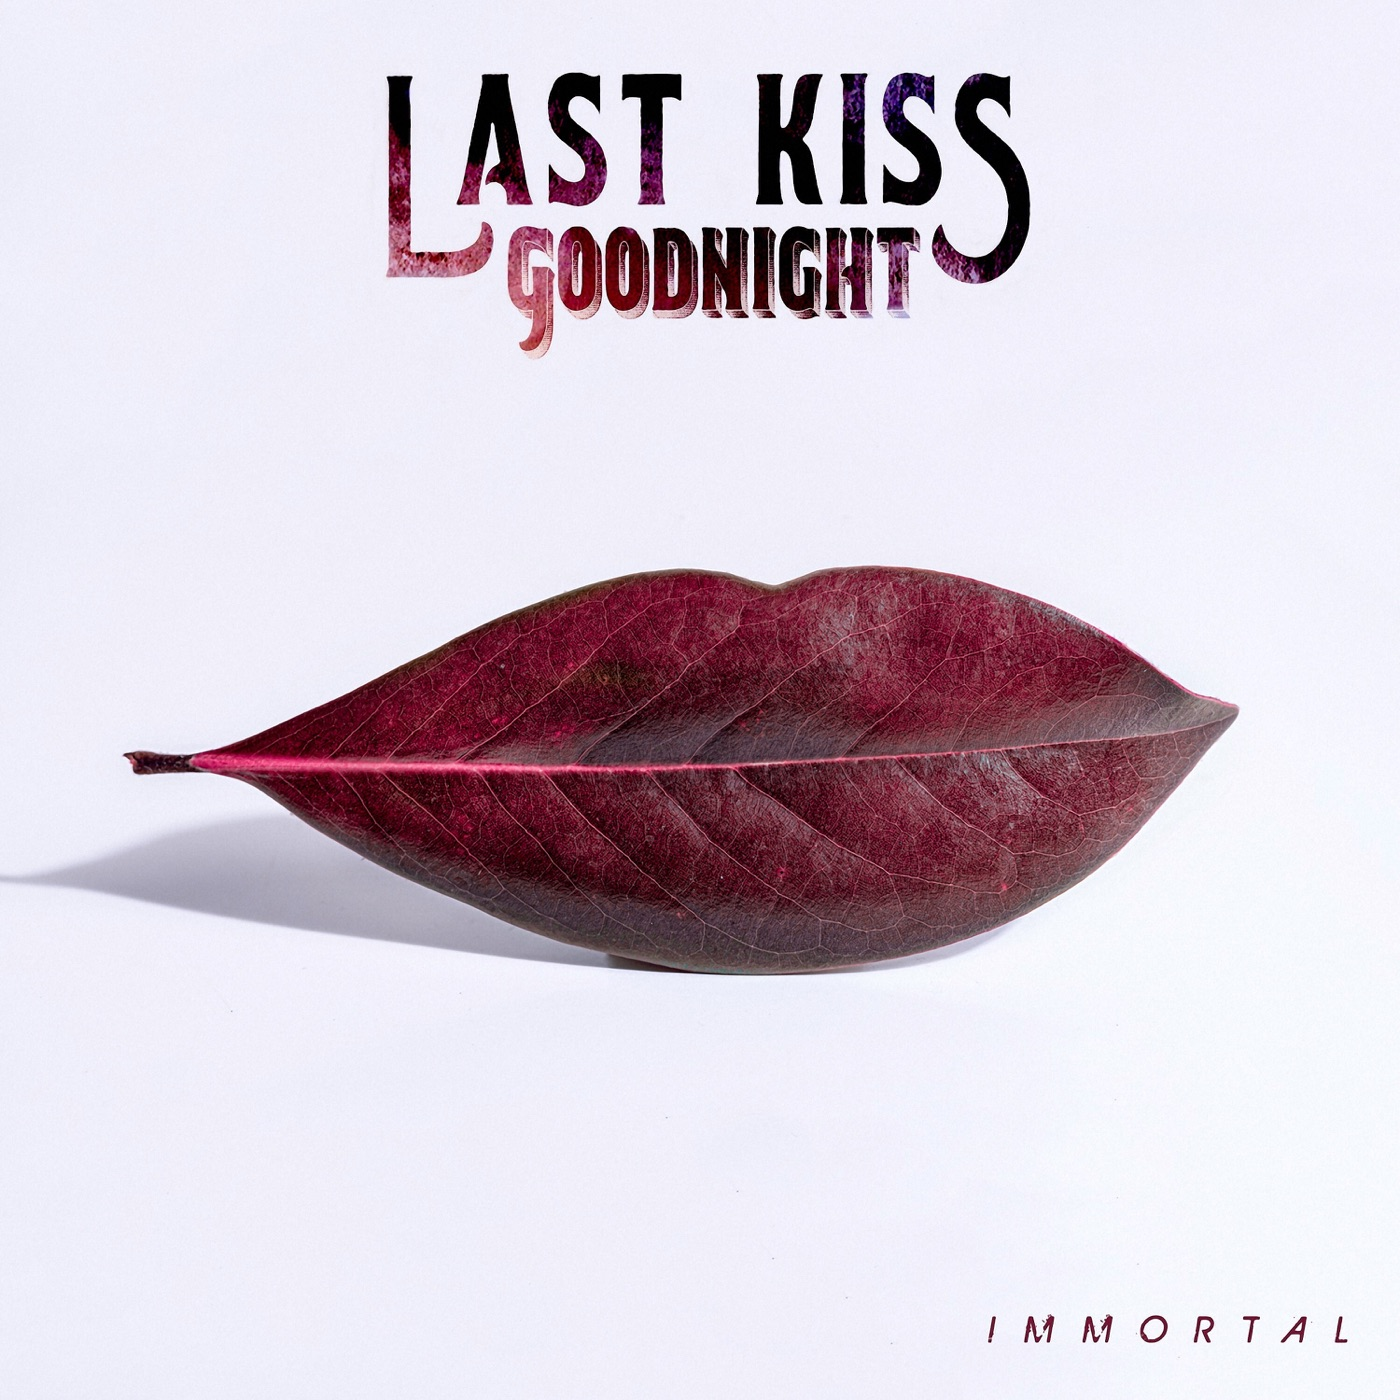 Last Kiss Goodnight - Immortal (2019)